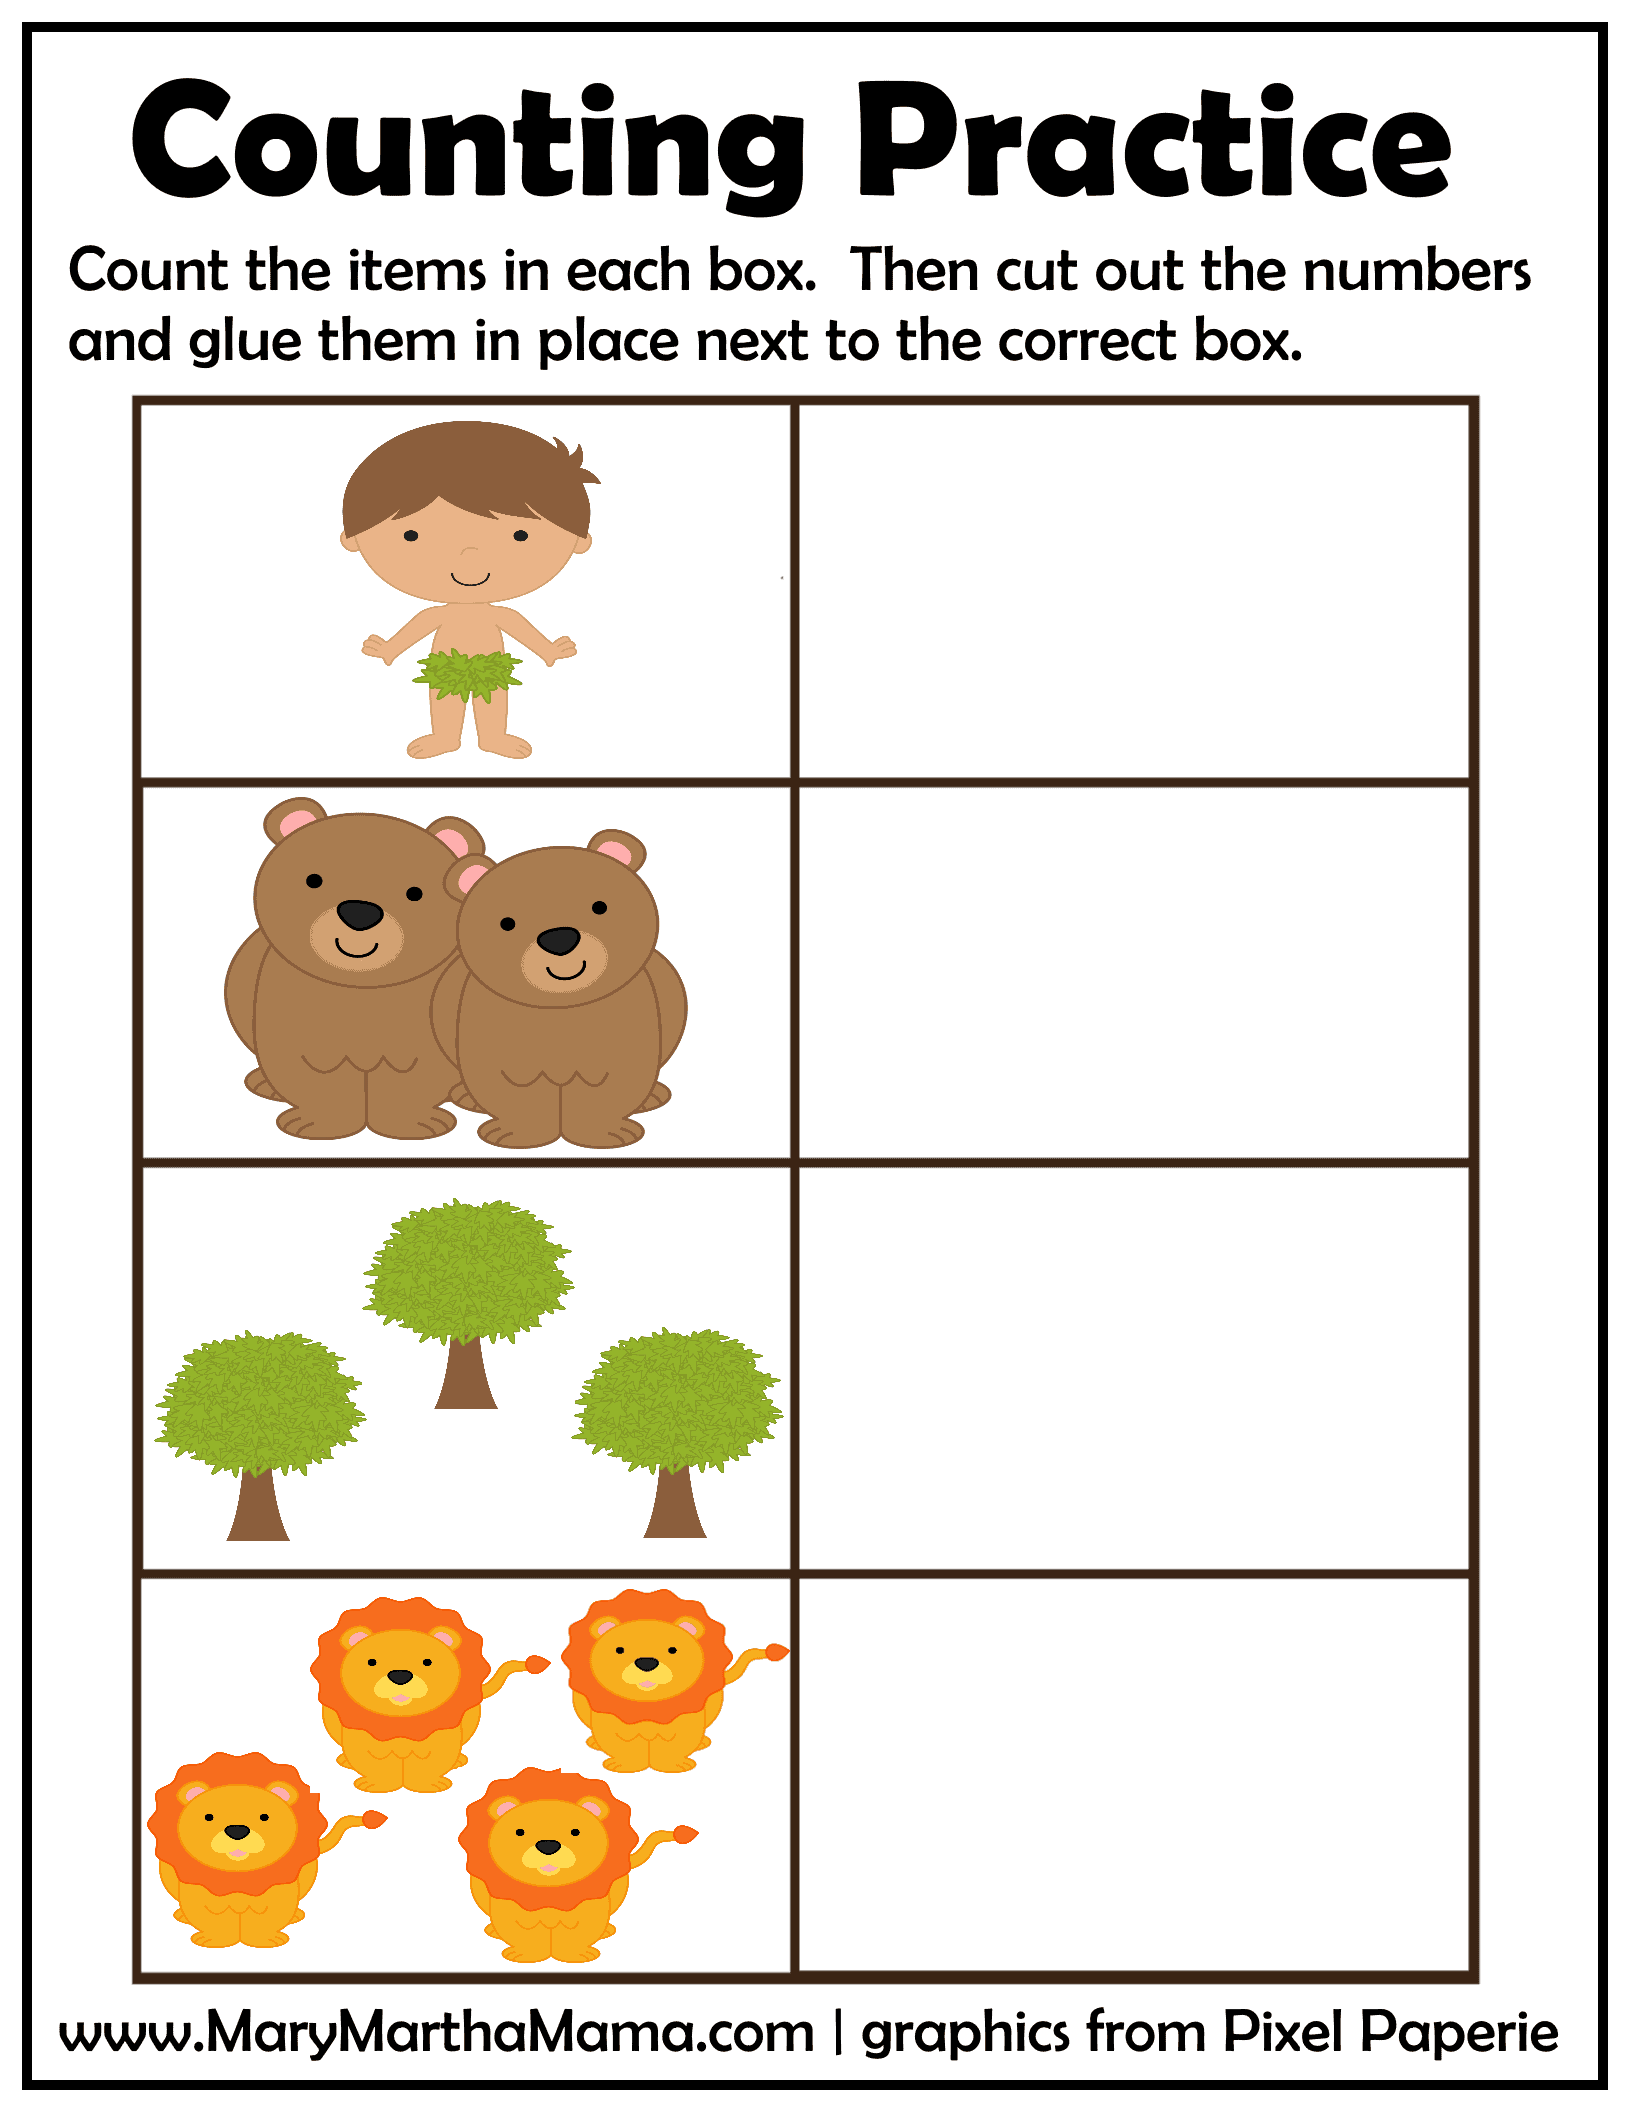 creation counting practice page 1